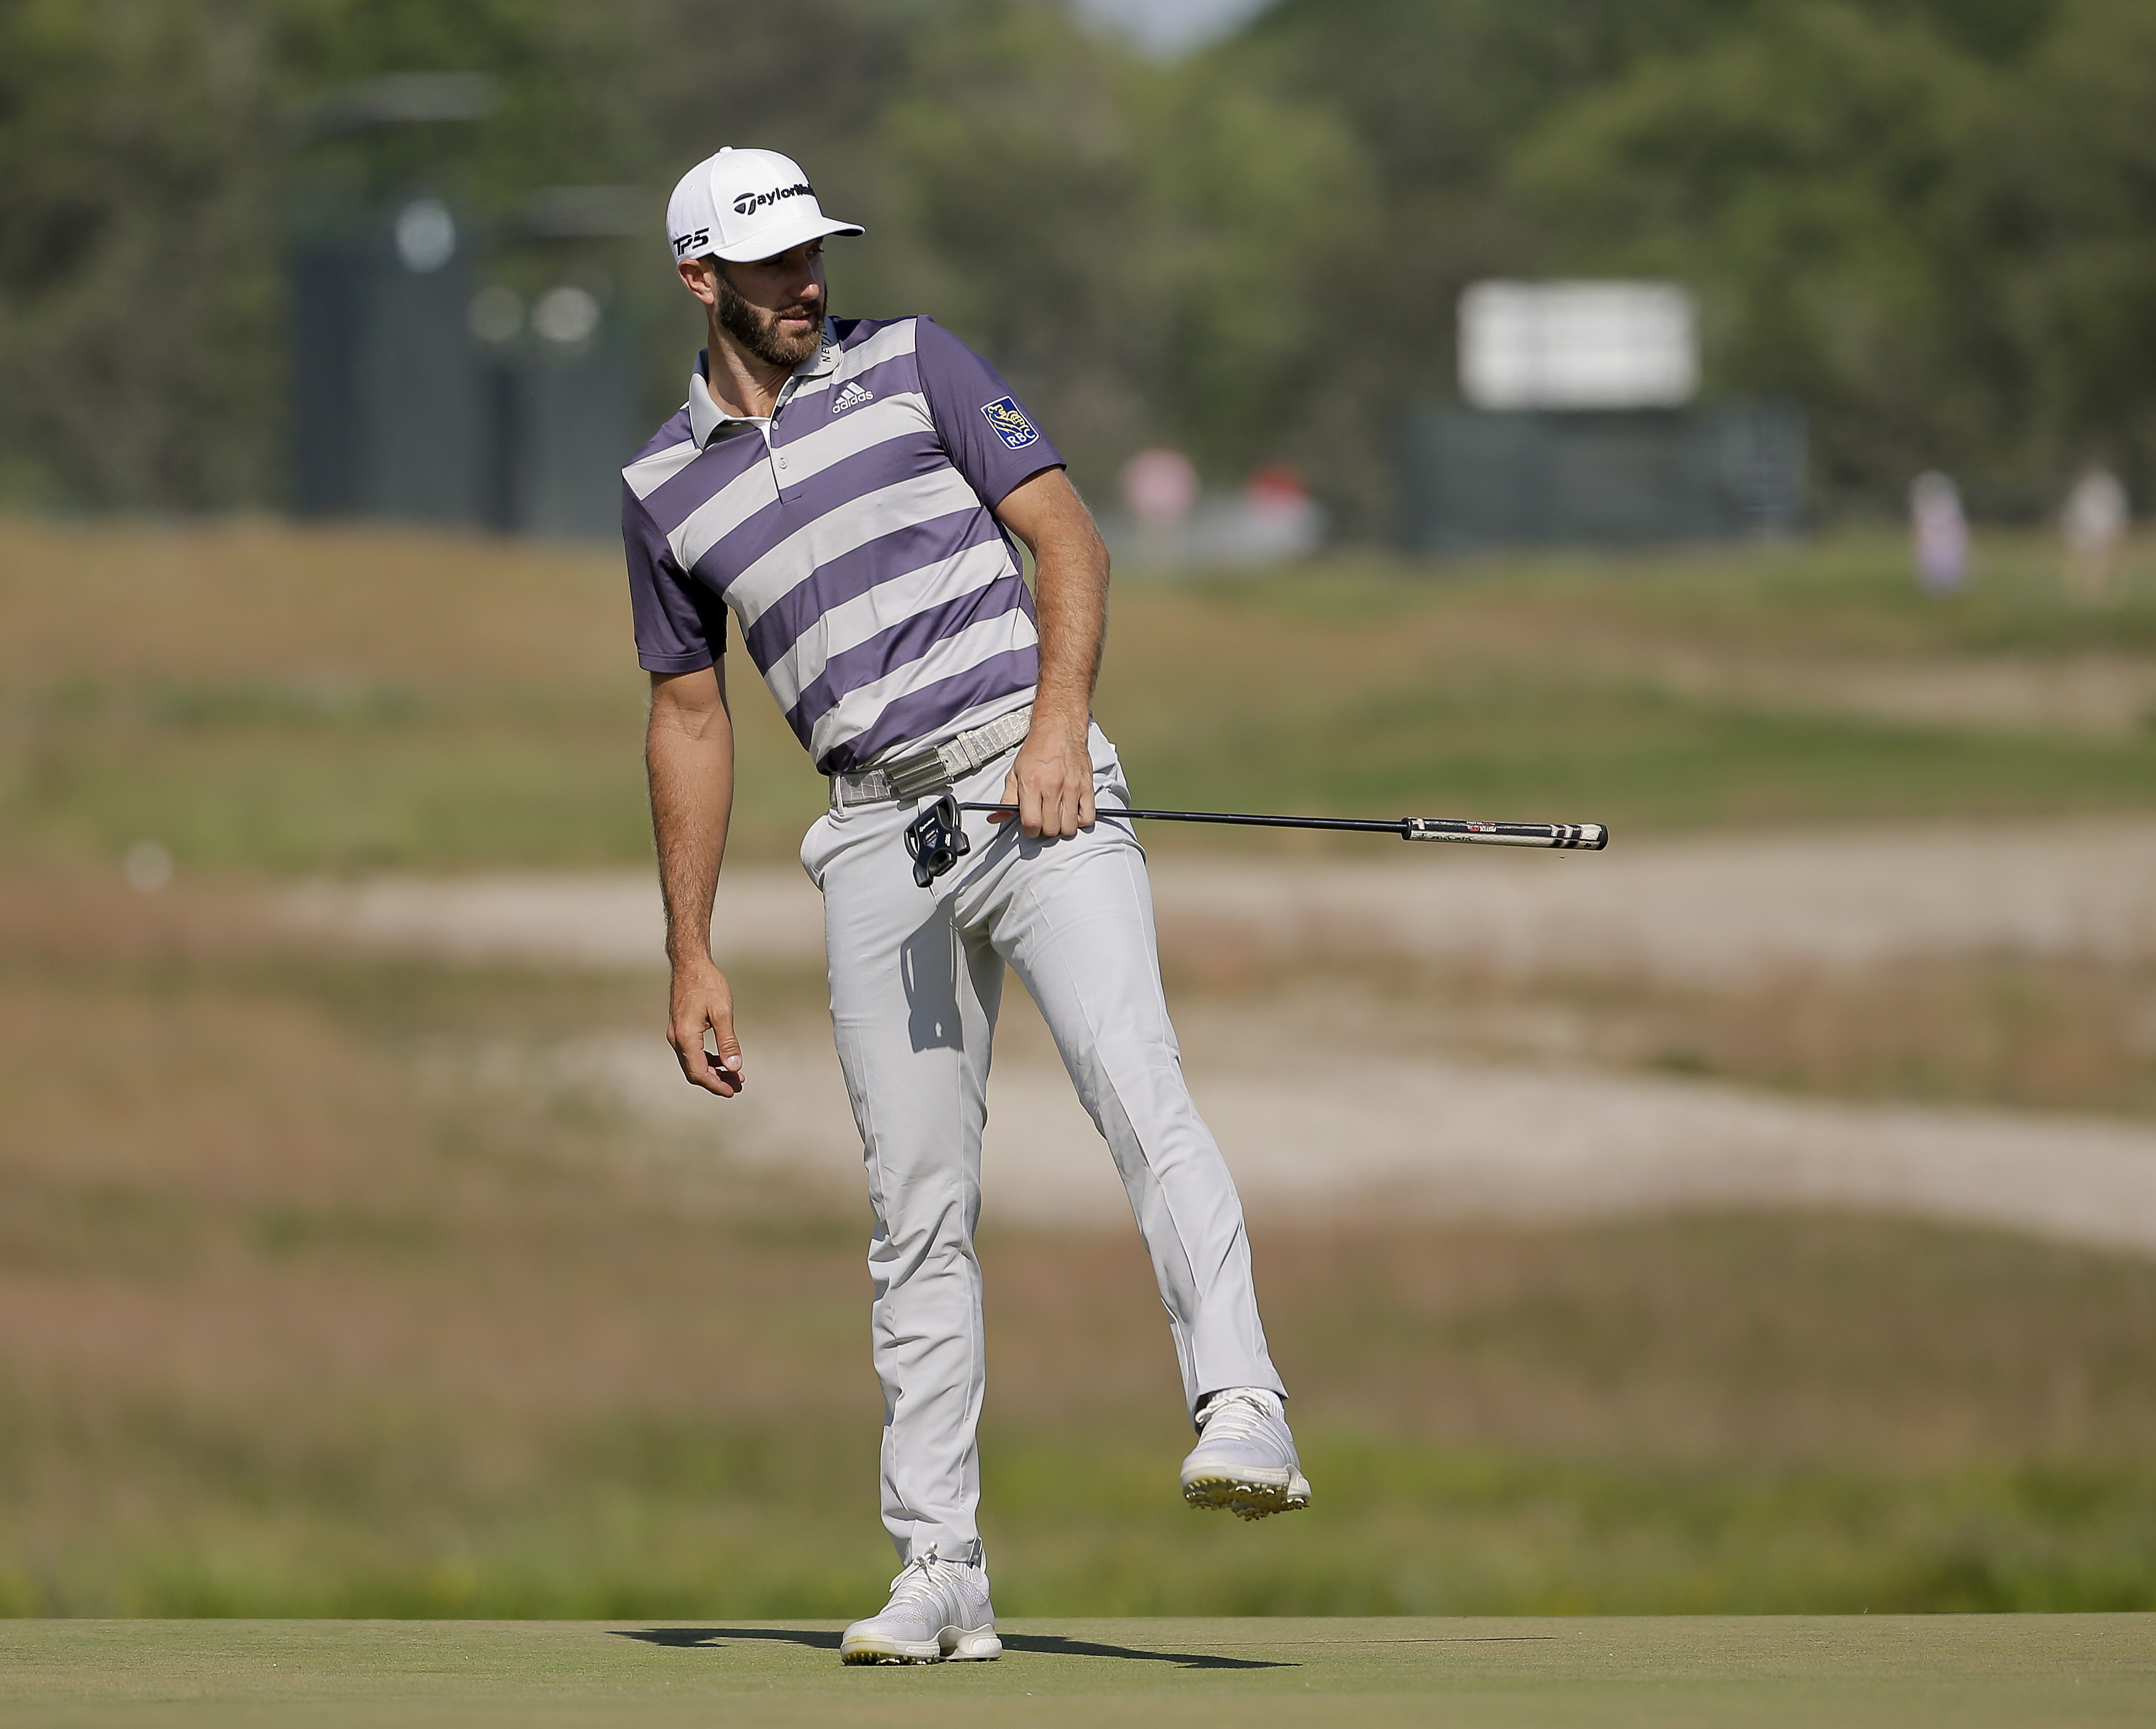 Dustin Johnson reacts to missing a putt on the sixth green during the third round of the U.S. Open on Saturday.